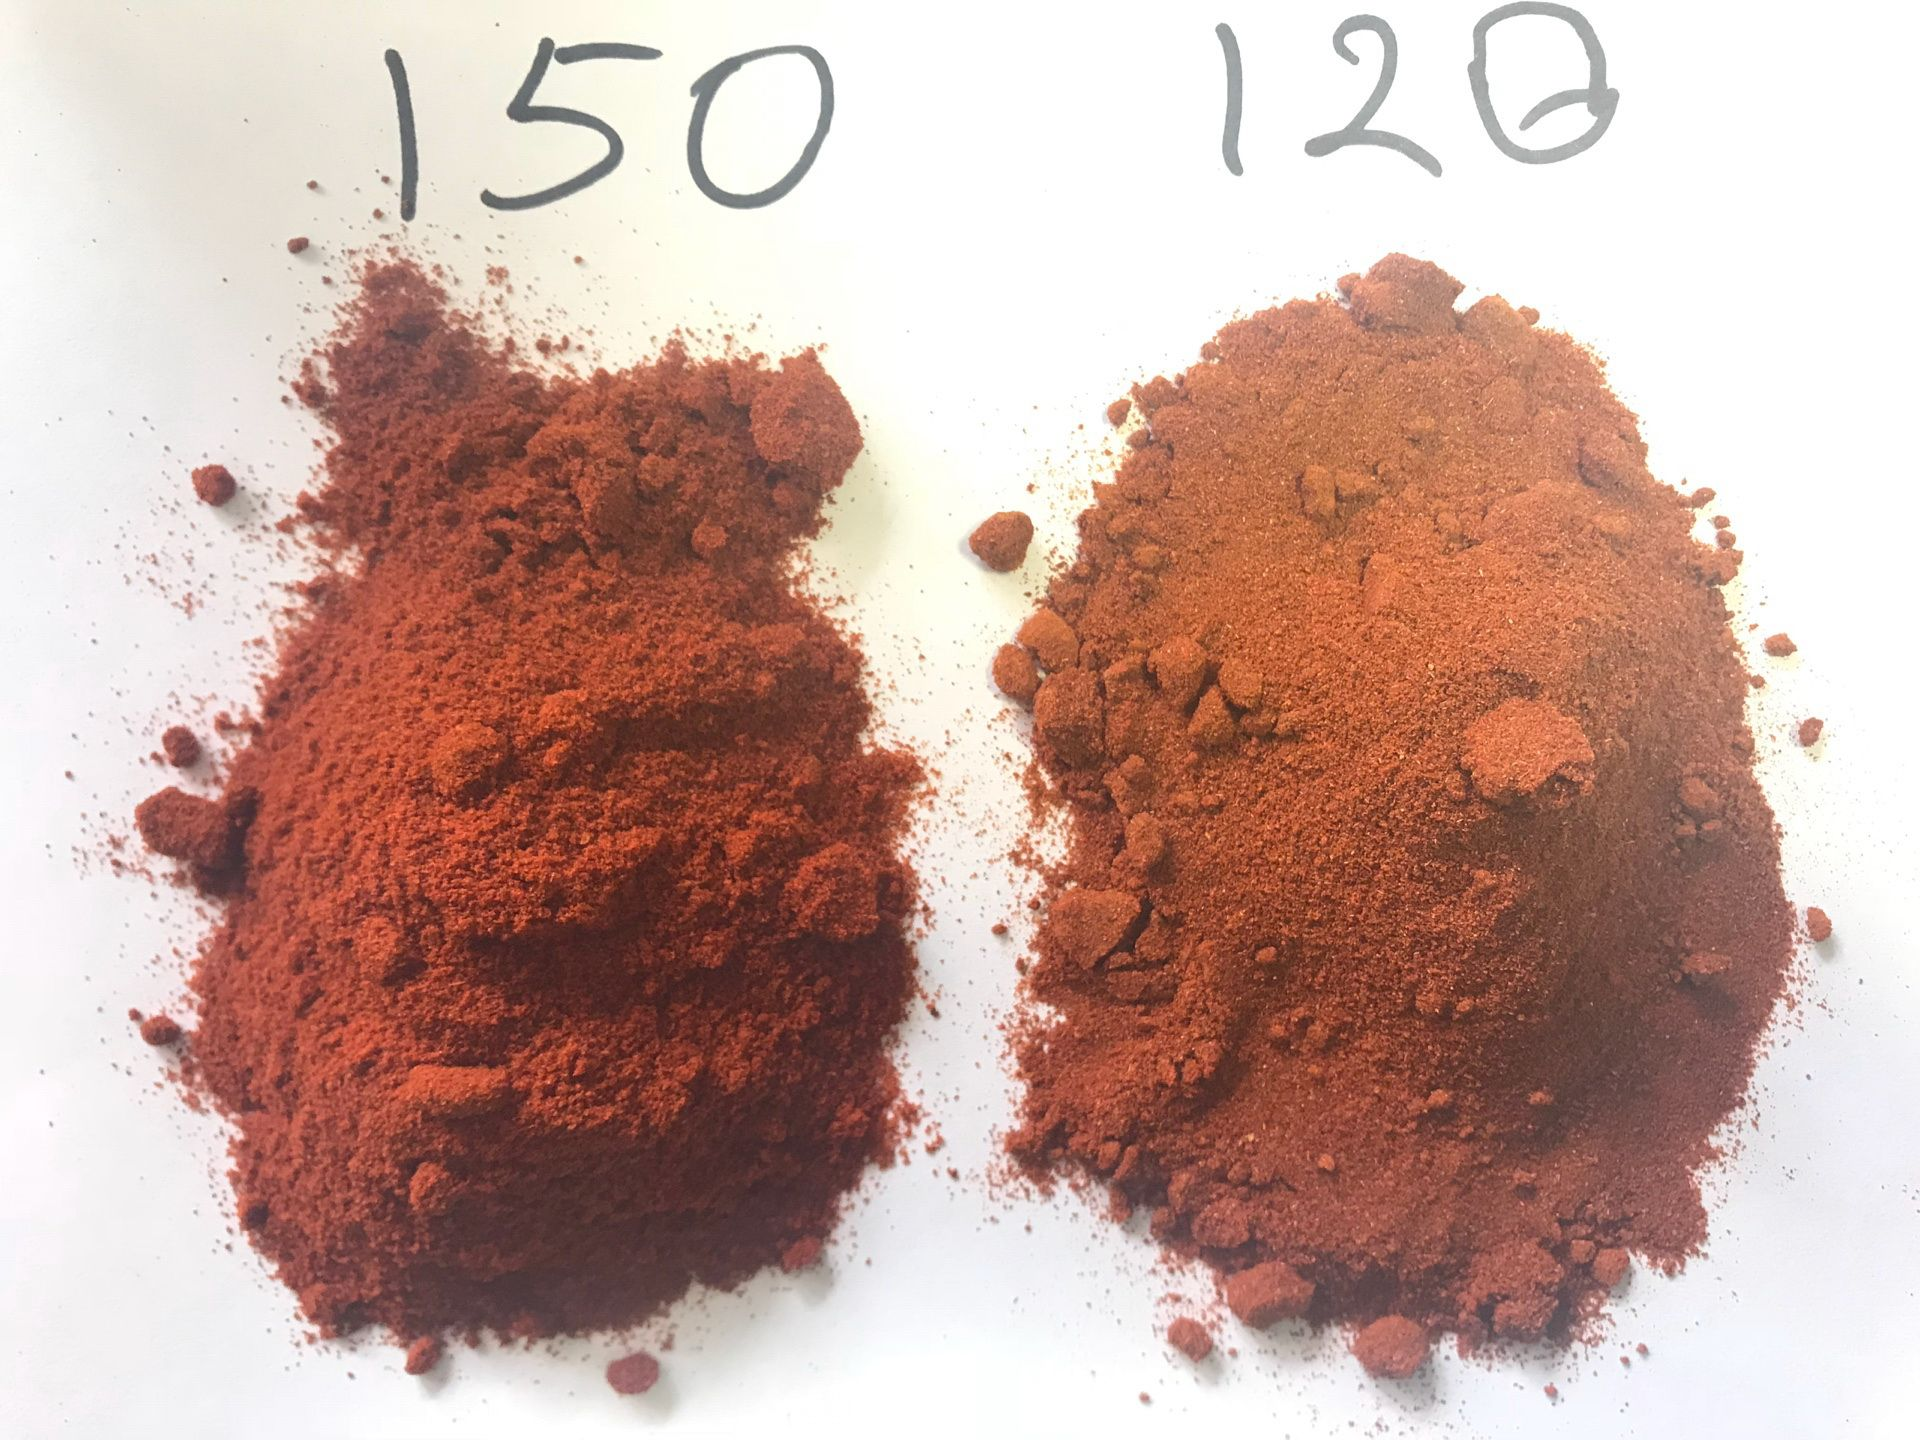 Ground paprika ASTA 150